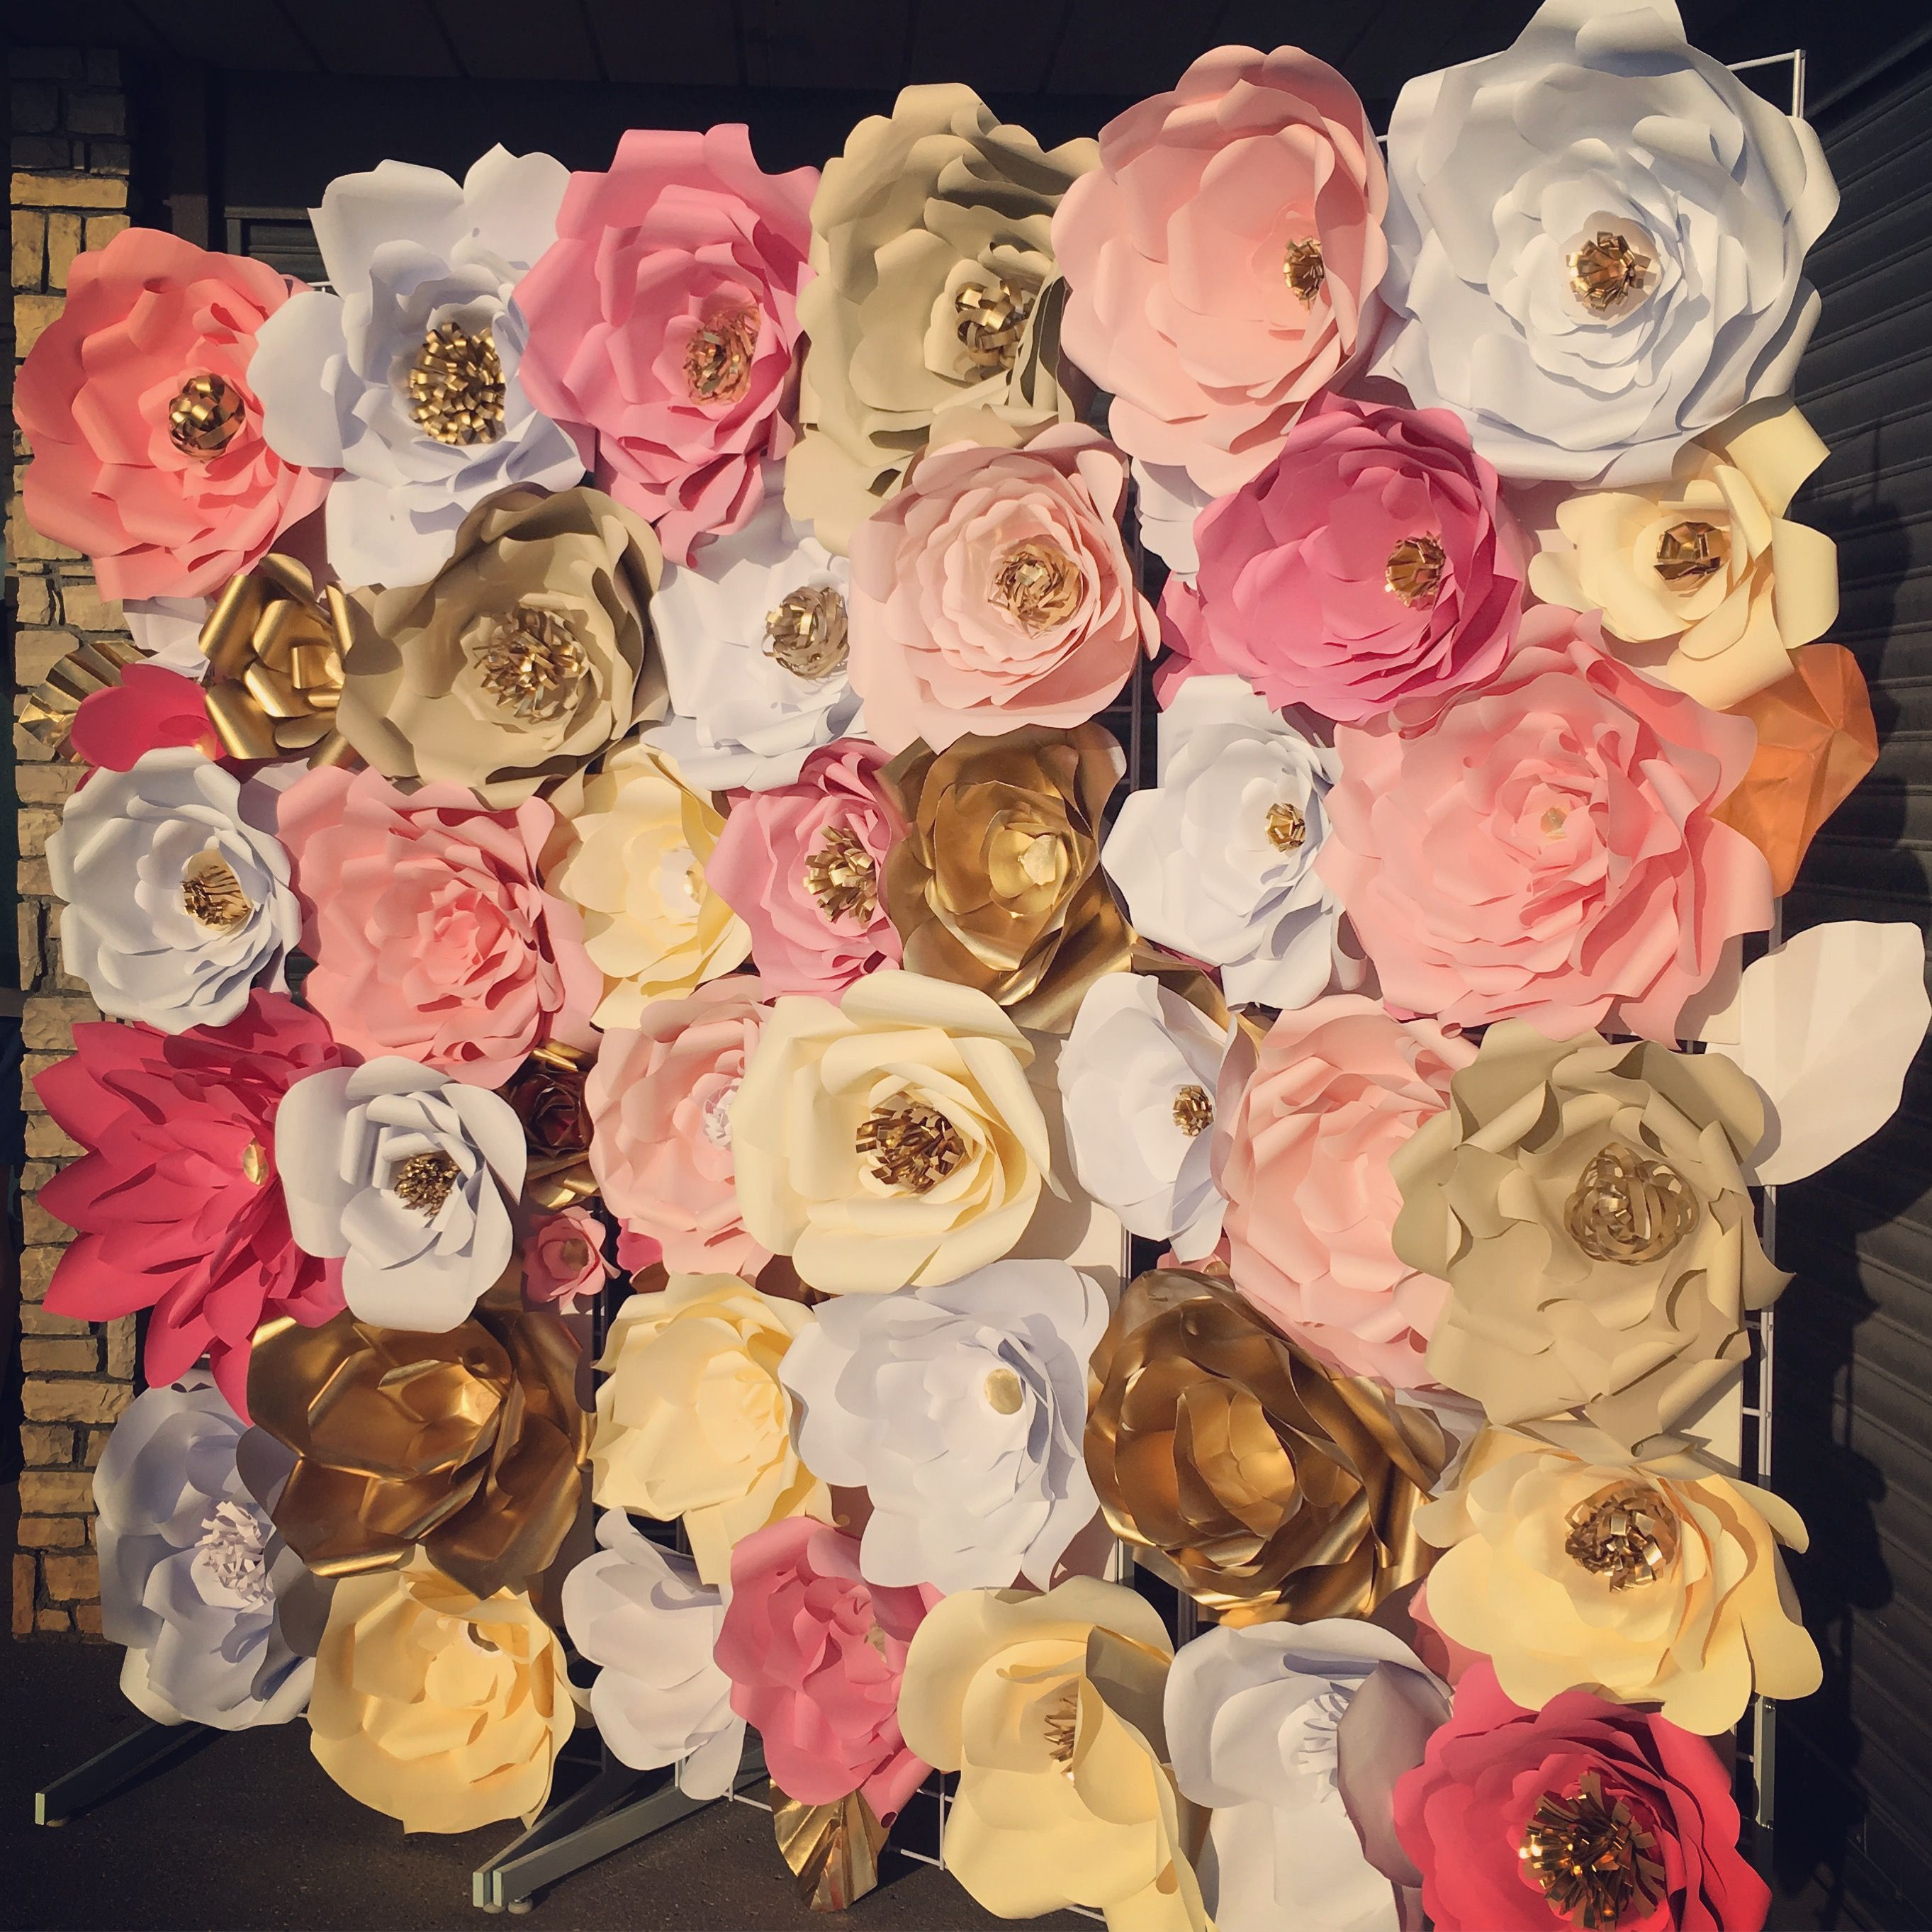 Wedding paper flower backdrop gold pinkwhite and beige paper wedding paper flower backdrop gold pinkwhite and beige paper flowers dhlflorist Choice Image